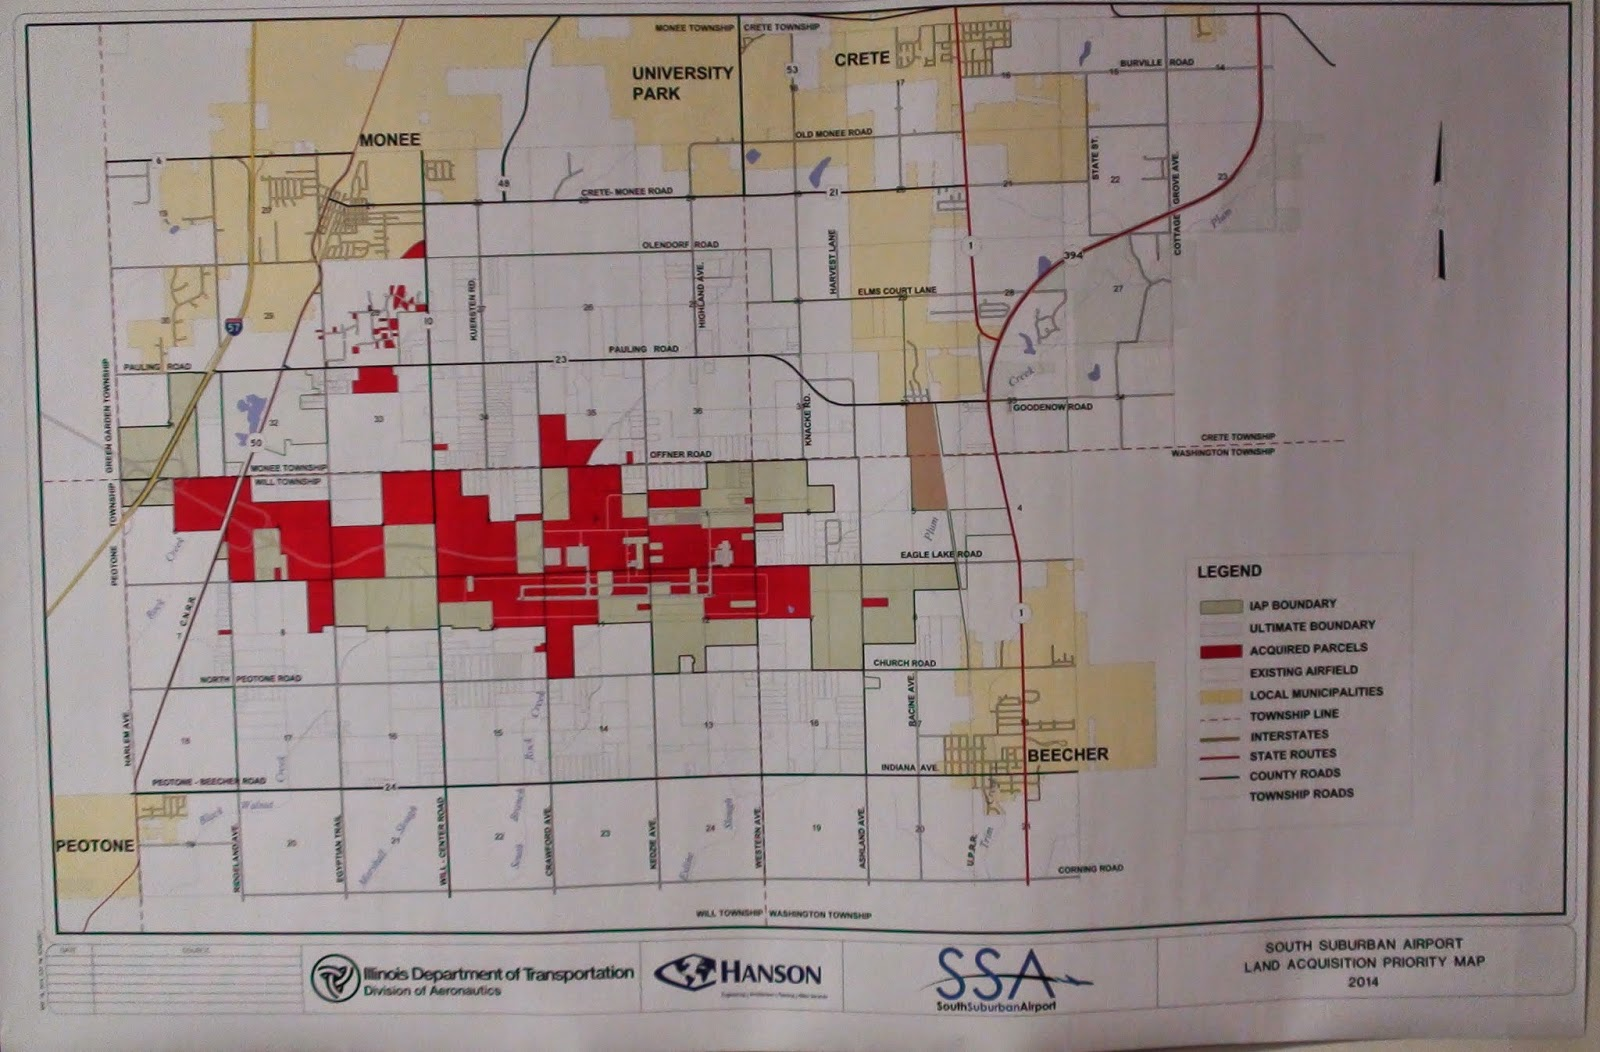 Illinois will county peotone - Map Of Peotone Airport Aka South Suburban Airport Land Purchased By The State Of Illinois Early 2014